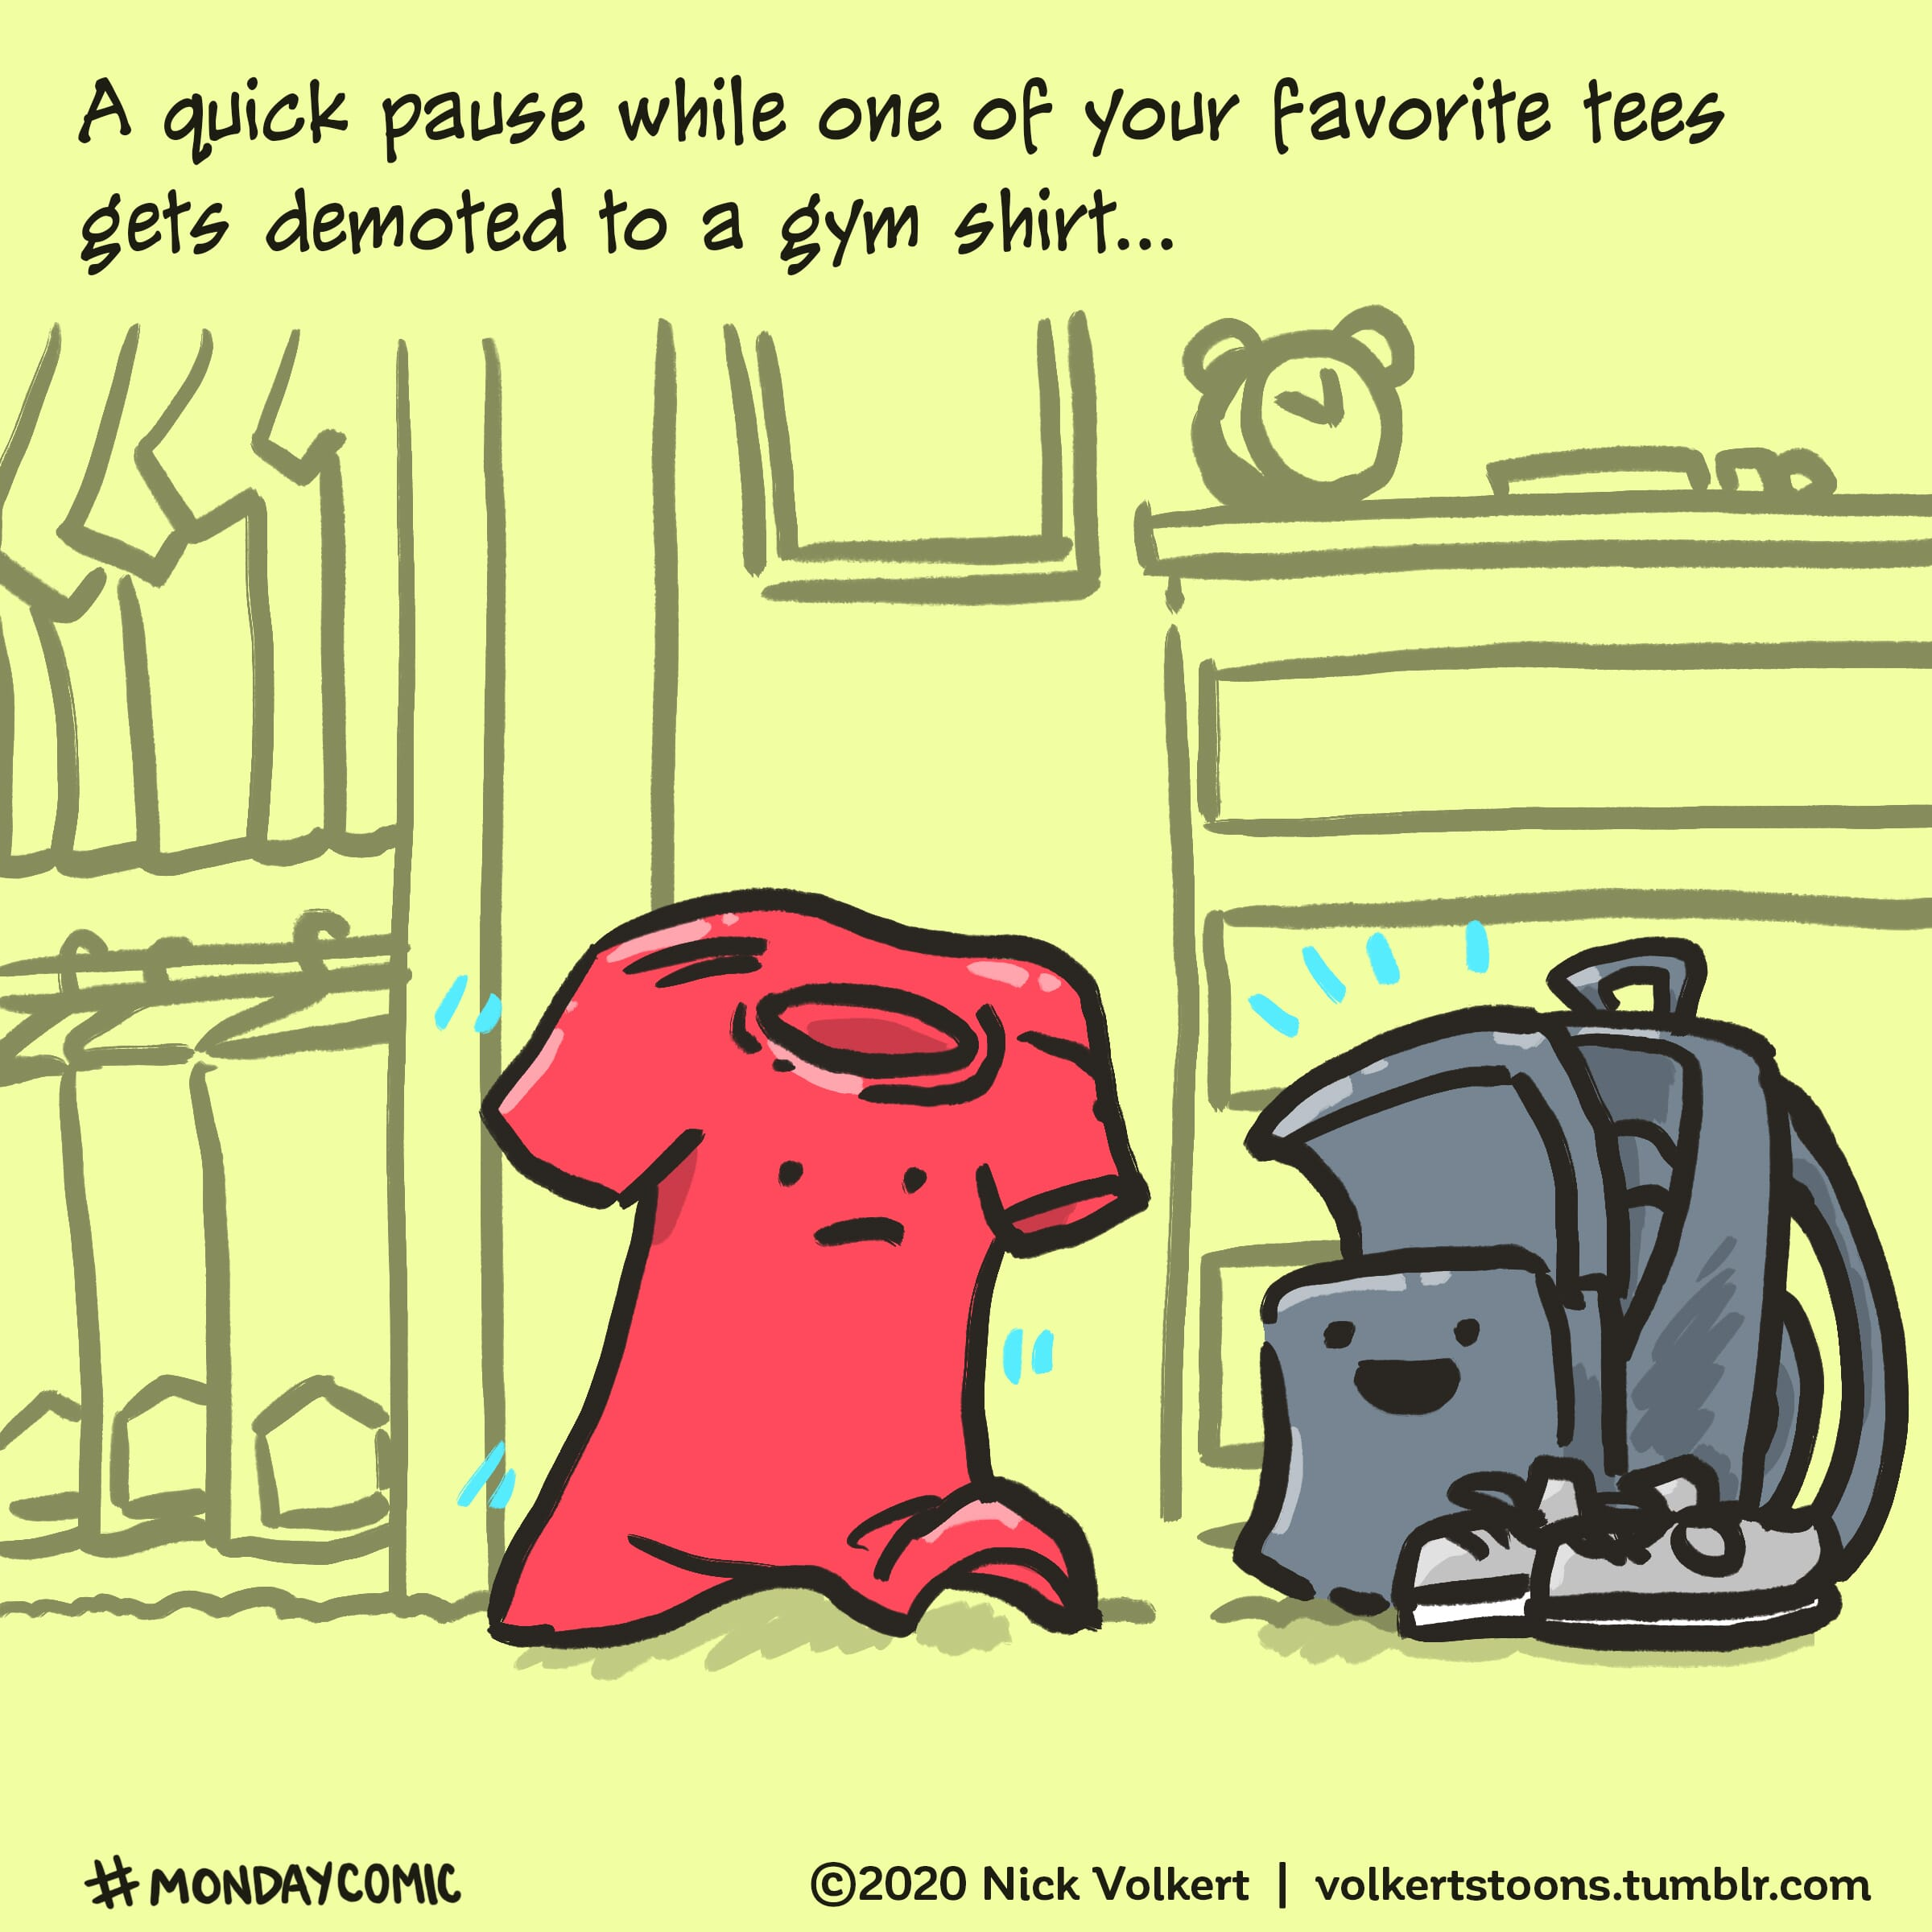 A tee shirt marches to a gym bag.